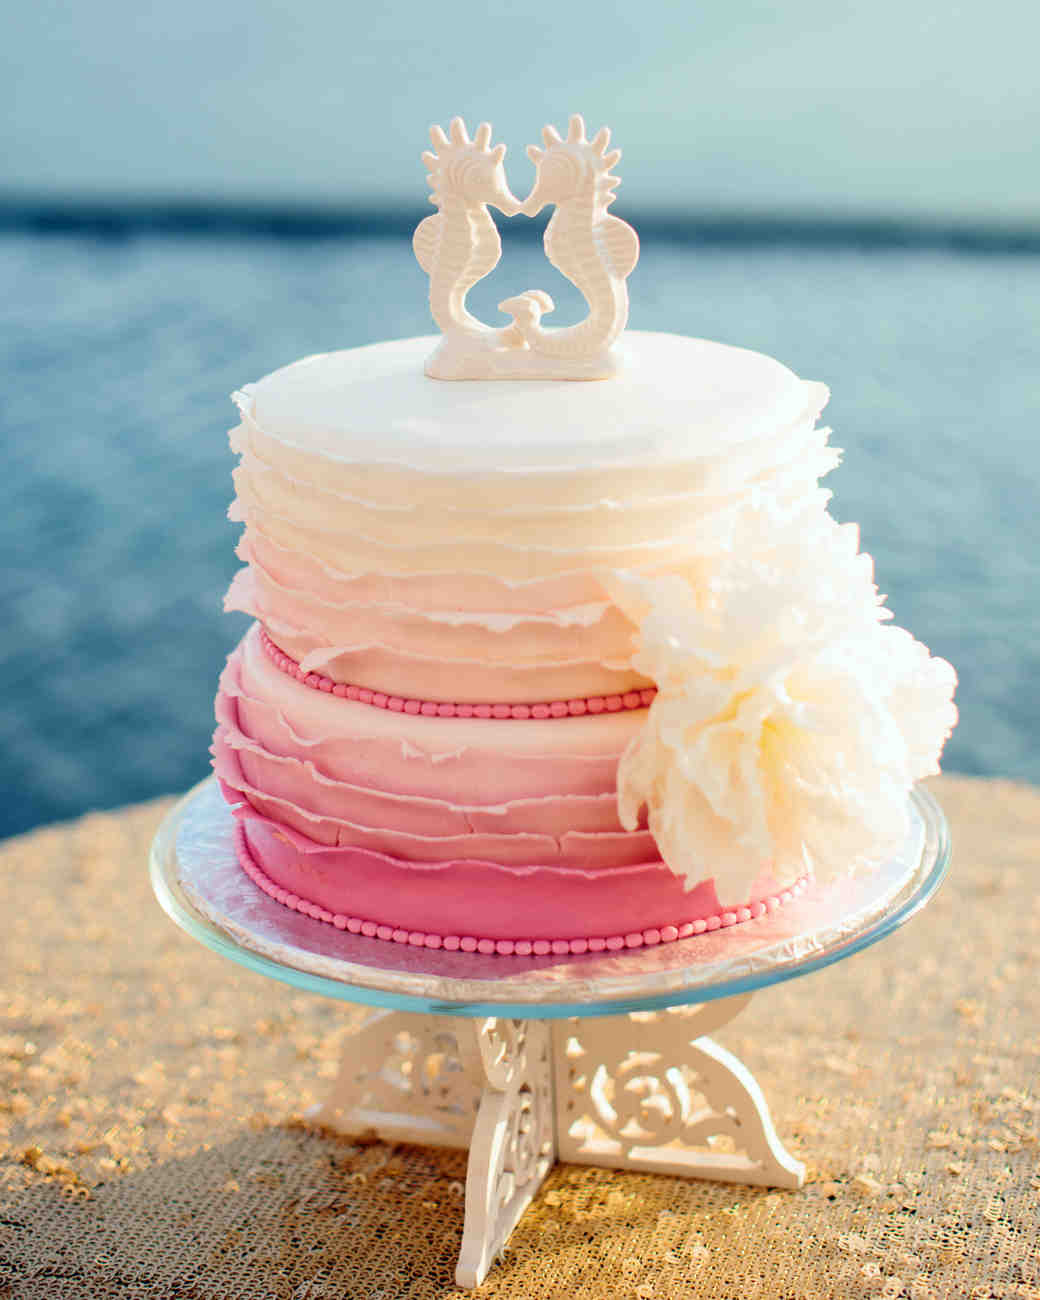 Wedding Cake Ideas For Summer Wedding : 25 Amazing Beach Wedding Cakes Martha Stewart Weddings